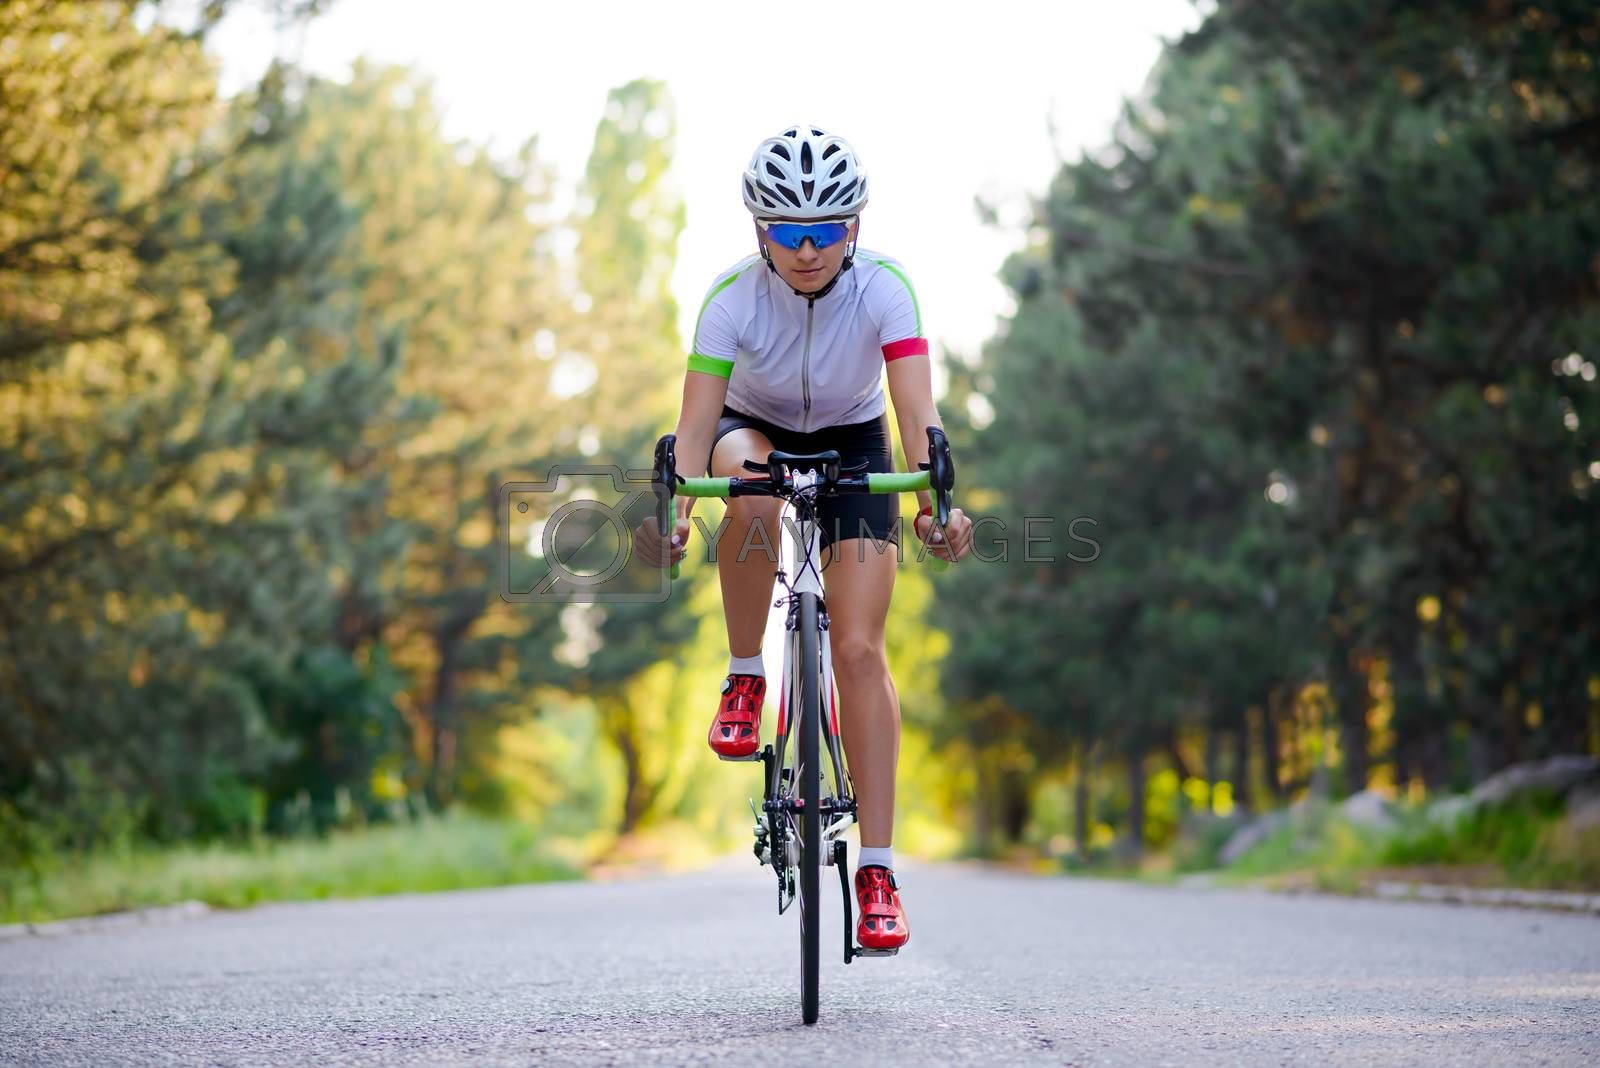 Young Woman Cyclist Riding Road Bicycle on Free Road in the Forest at Hot Summer Day. Healthy Lifestyle Concept.